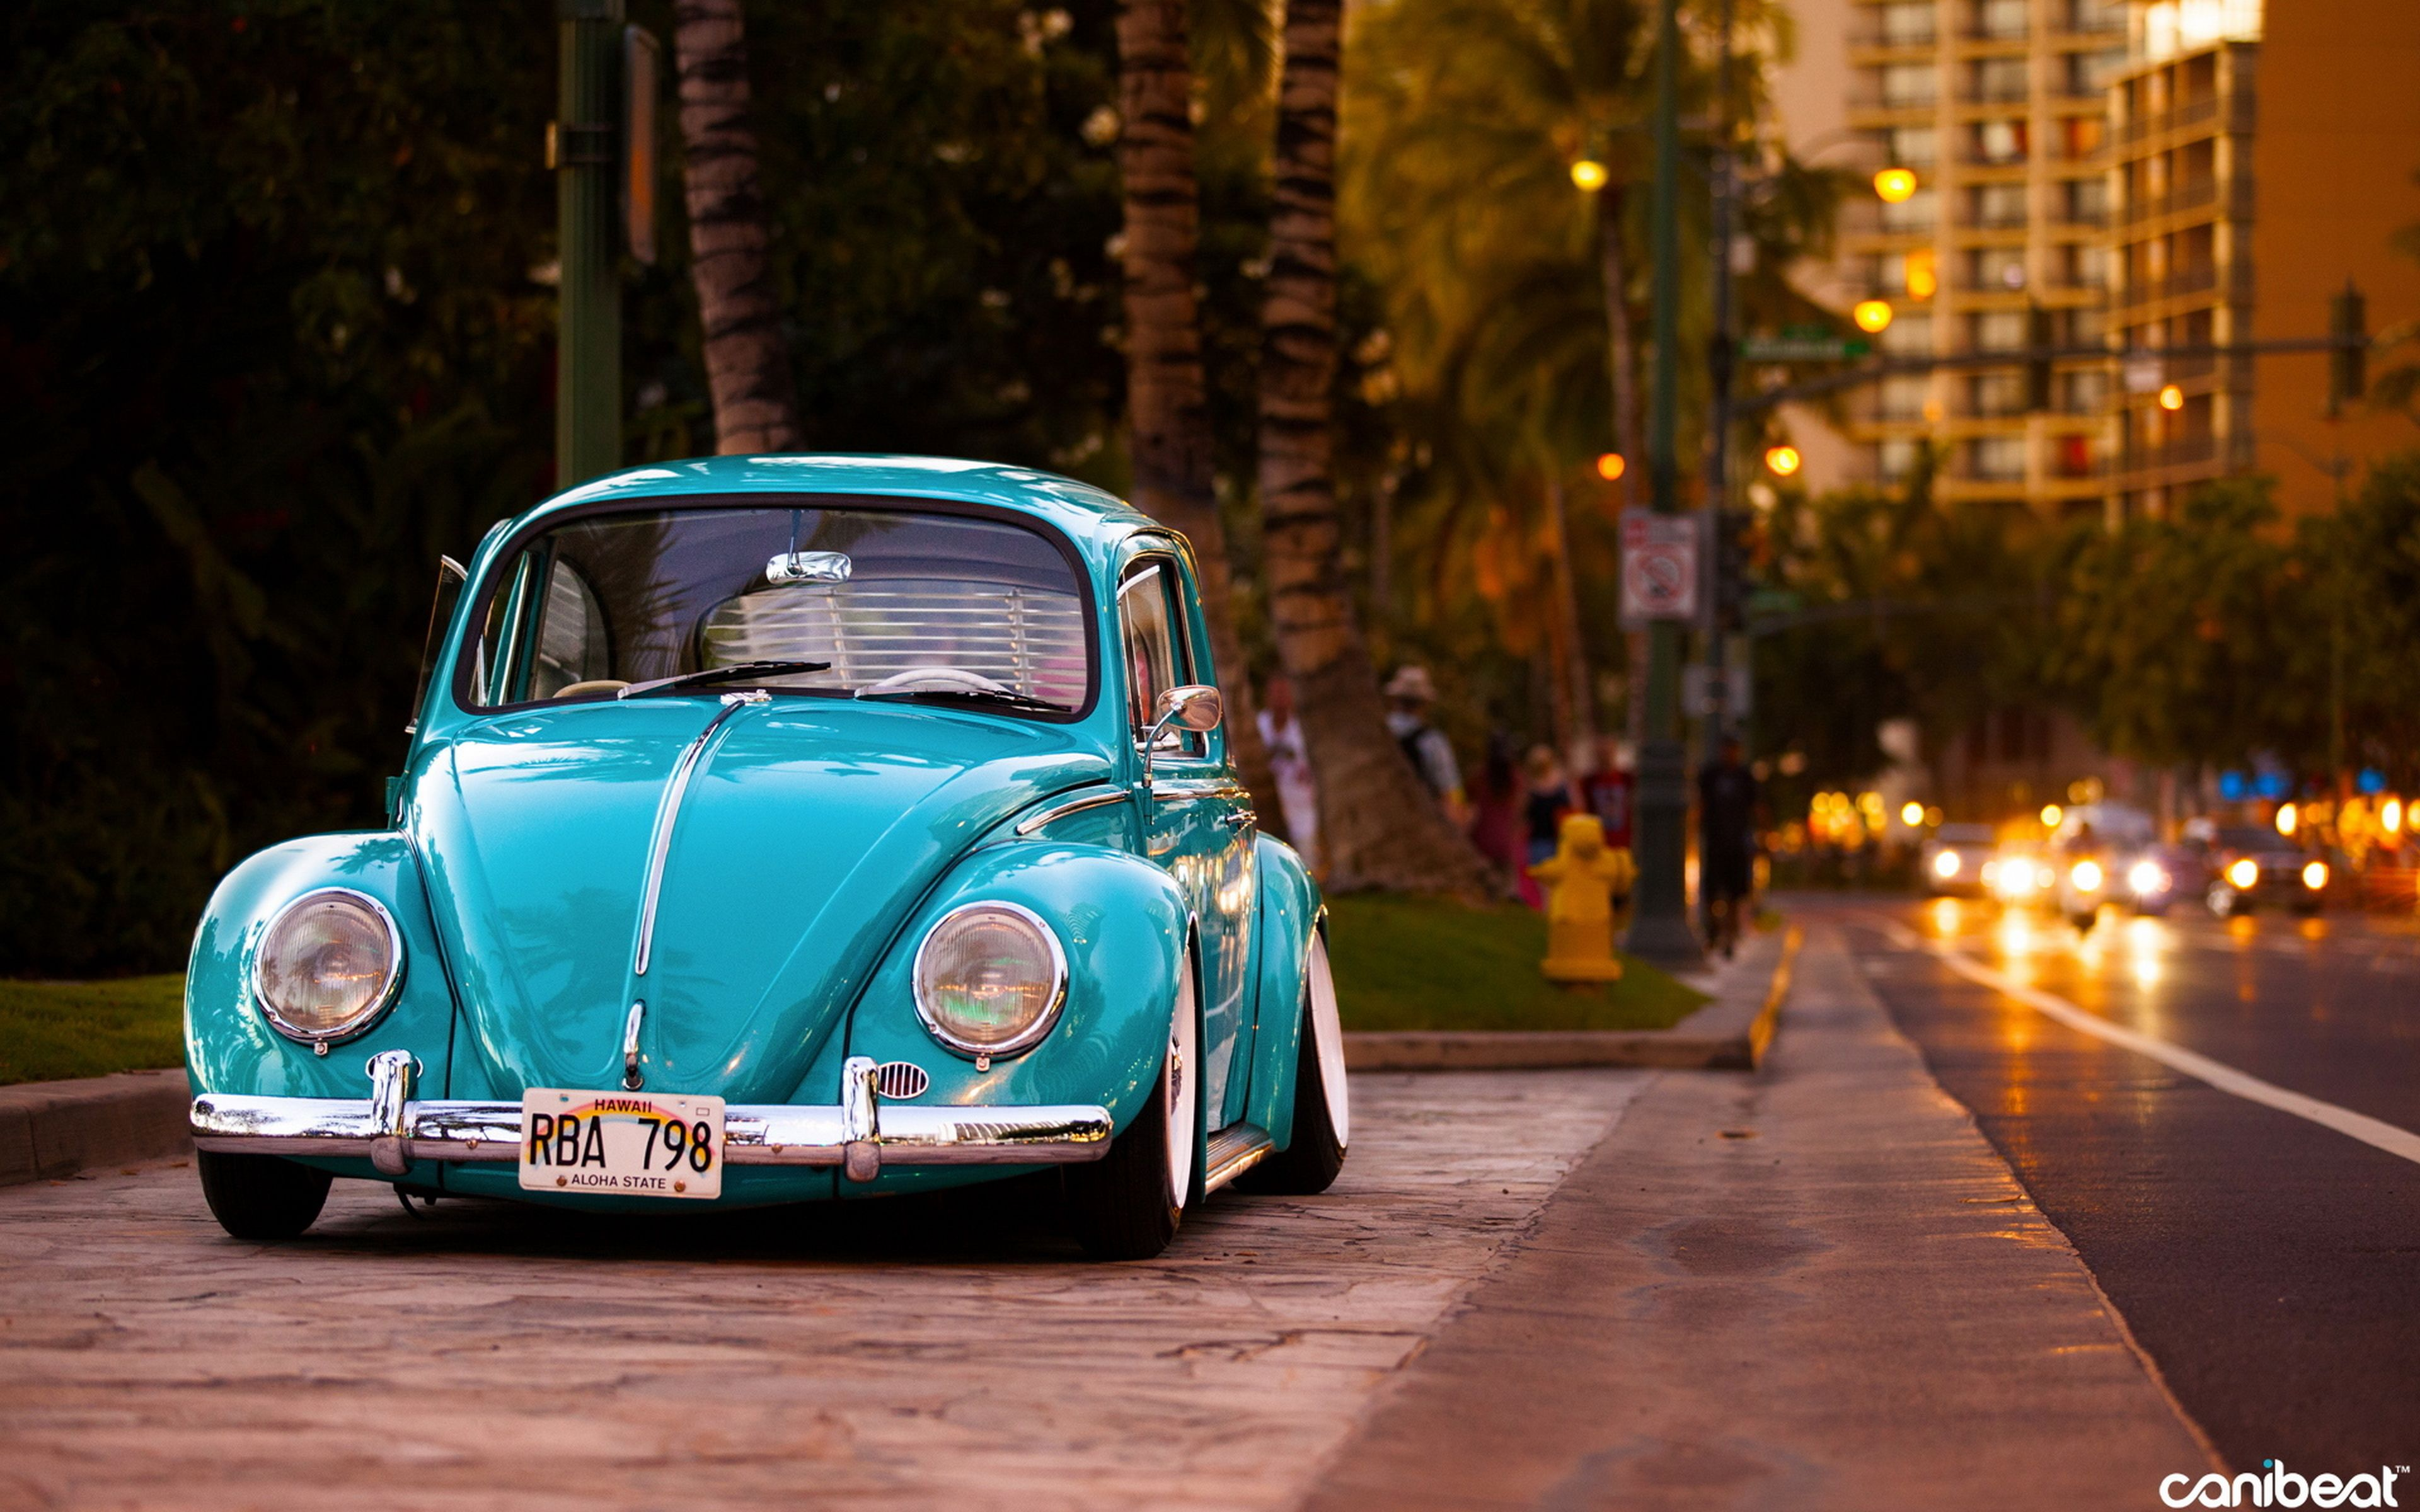 Tiny house bugs car pictures car tuning - Voertuigen Volkswagen Beetle Stad Blue Car Street Classic Auto Wallpaper